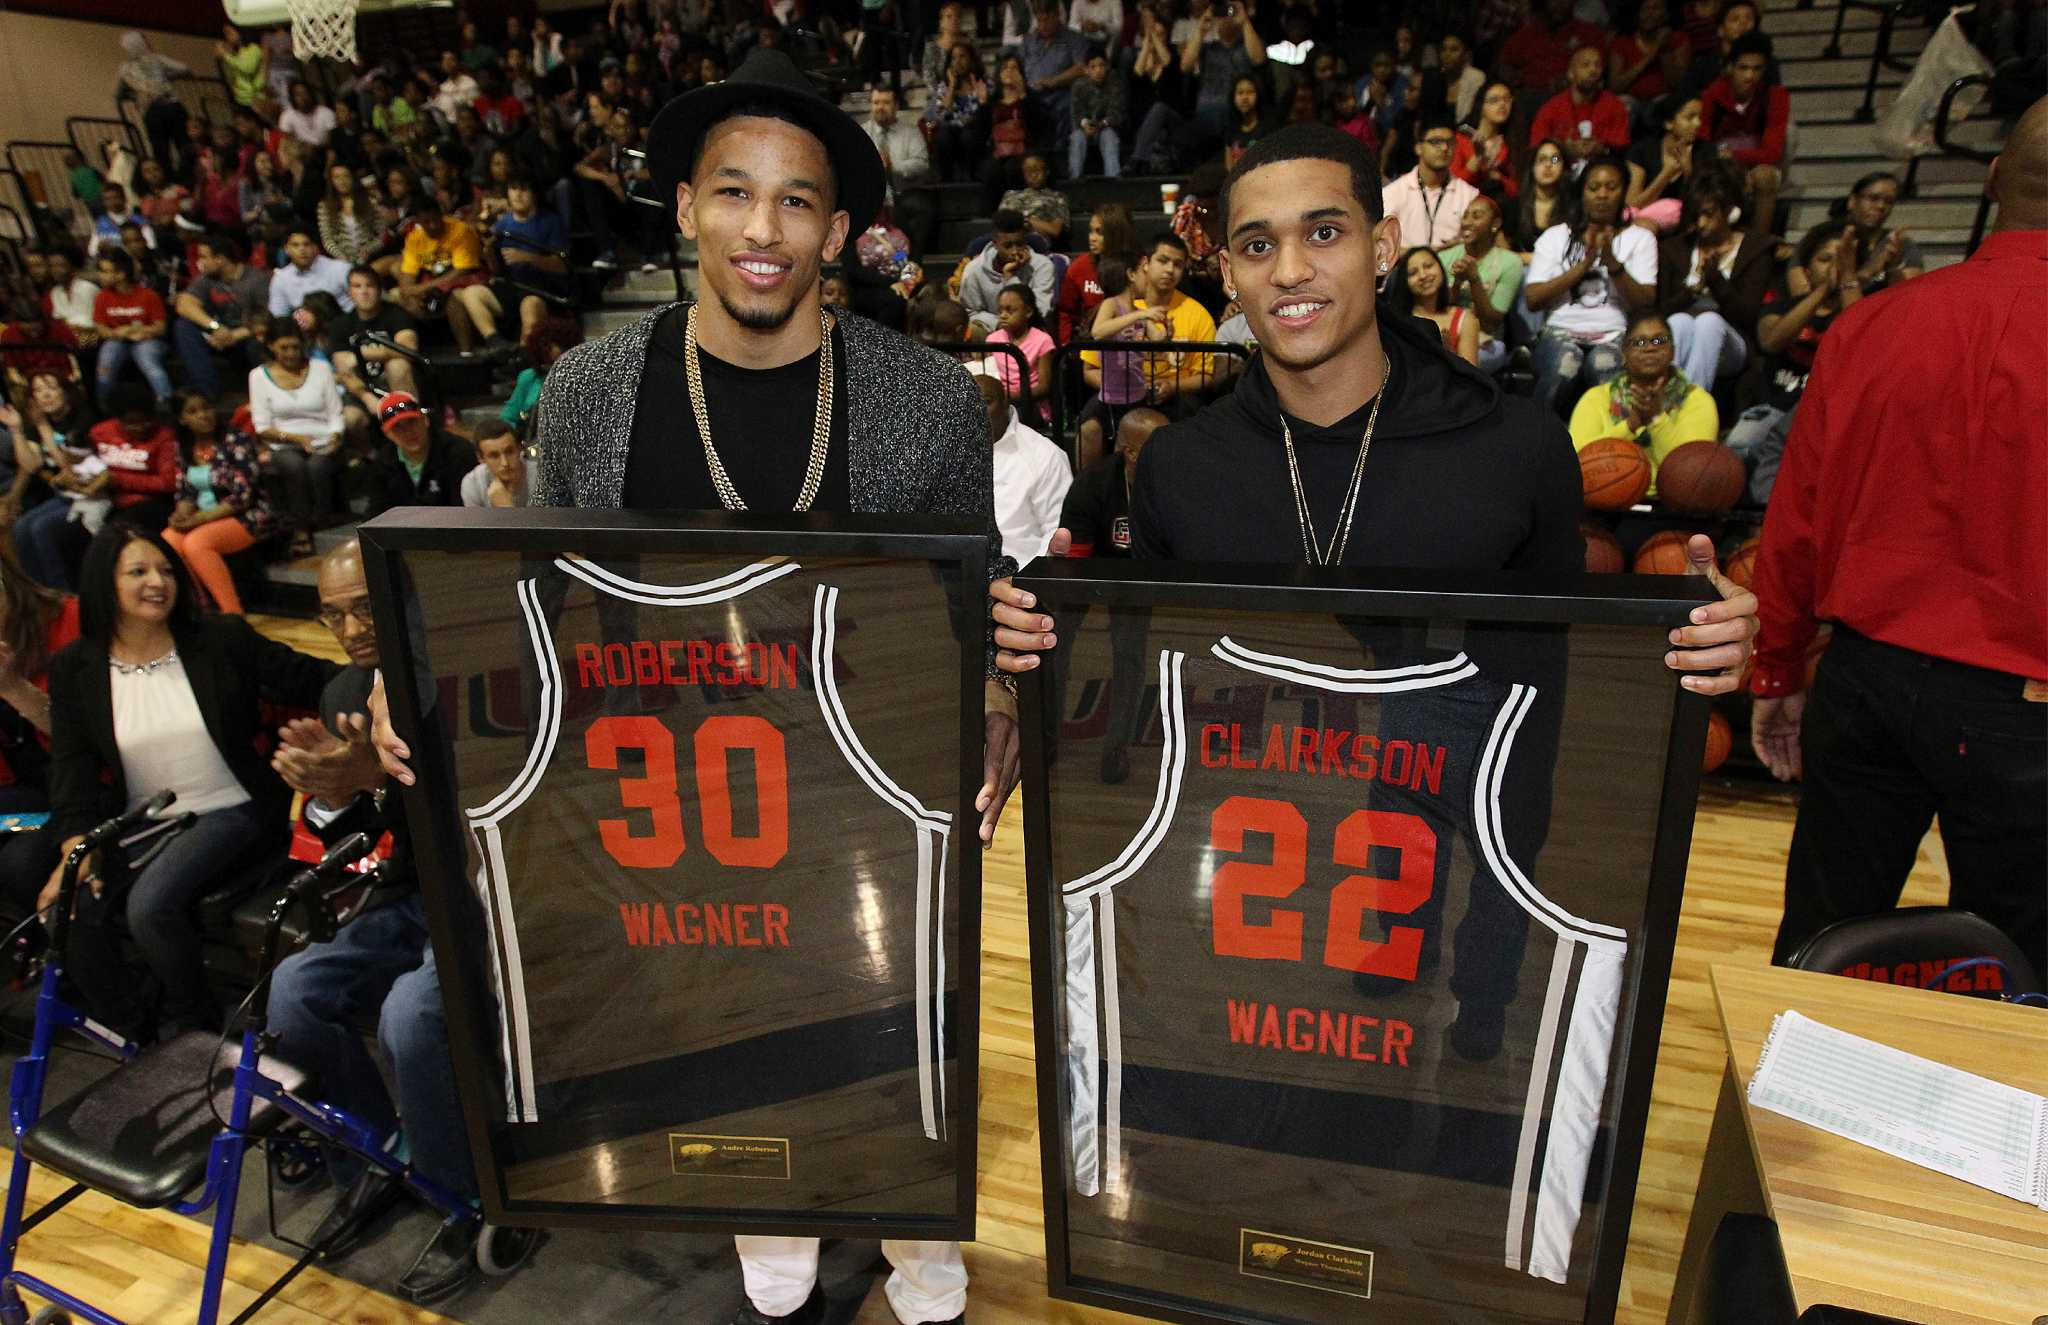 Wagner Exes Roberson Clarkson Have Jerseys Retired San